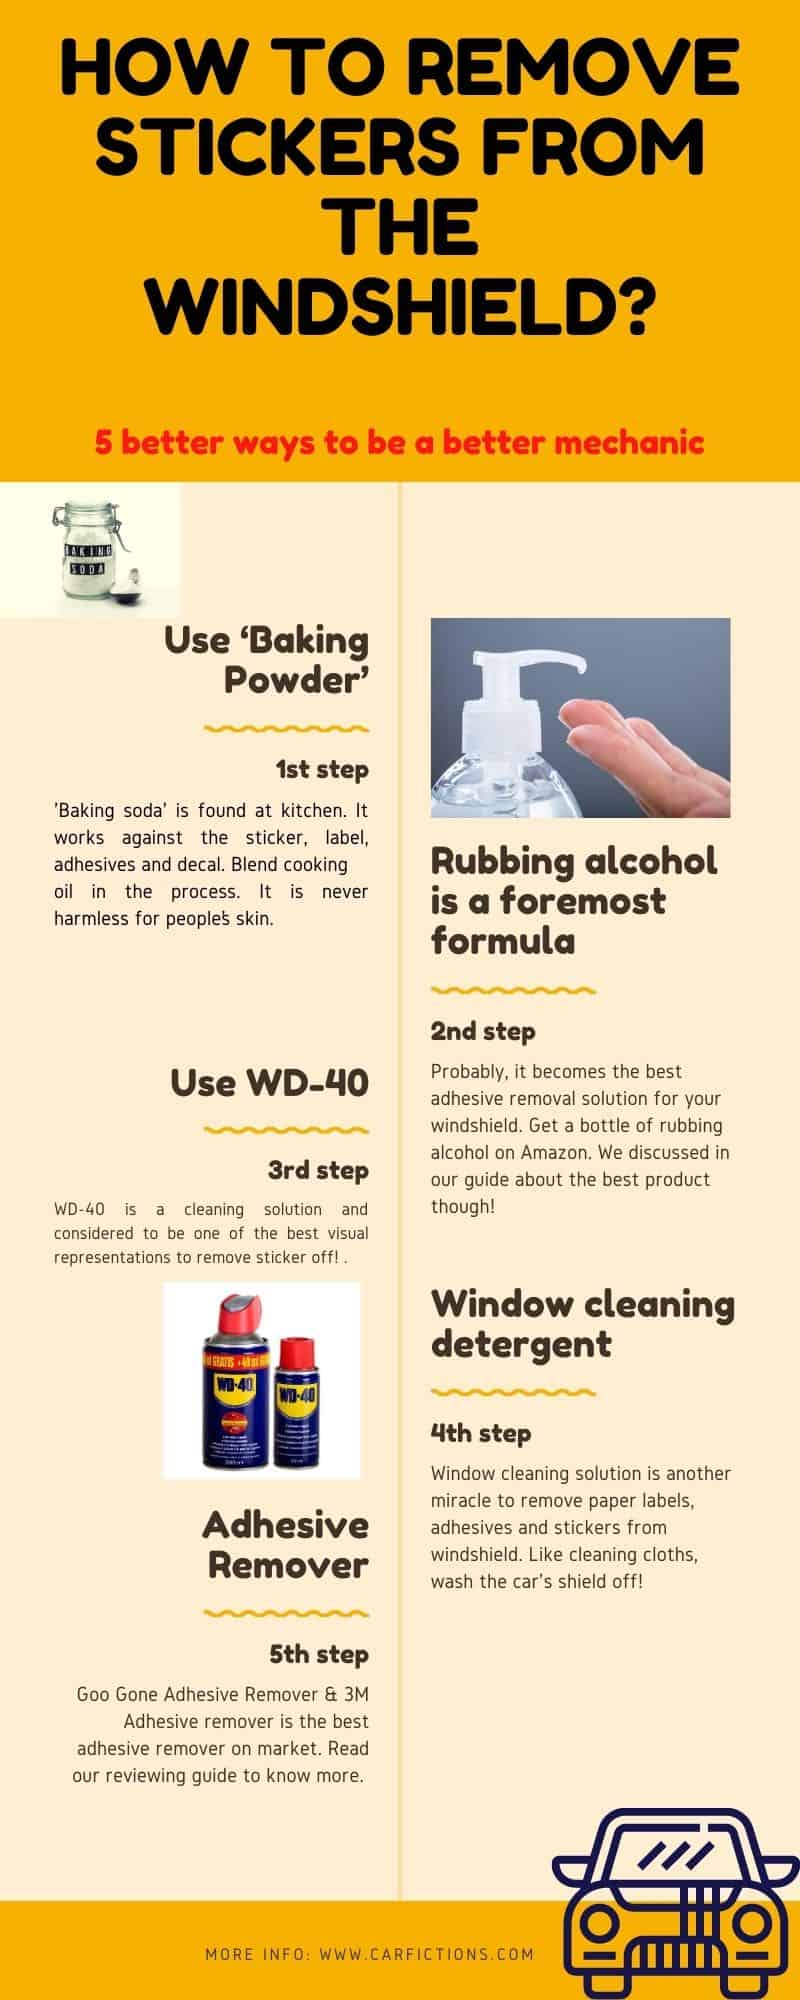 infographic How to Remove Stickers From the Windshield